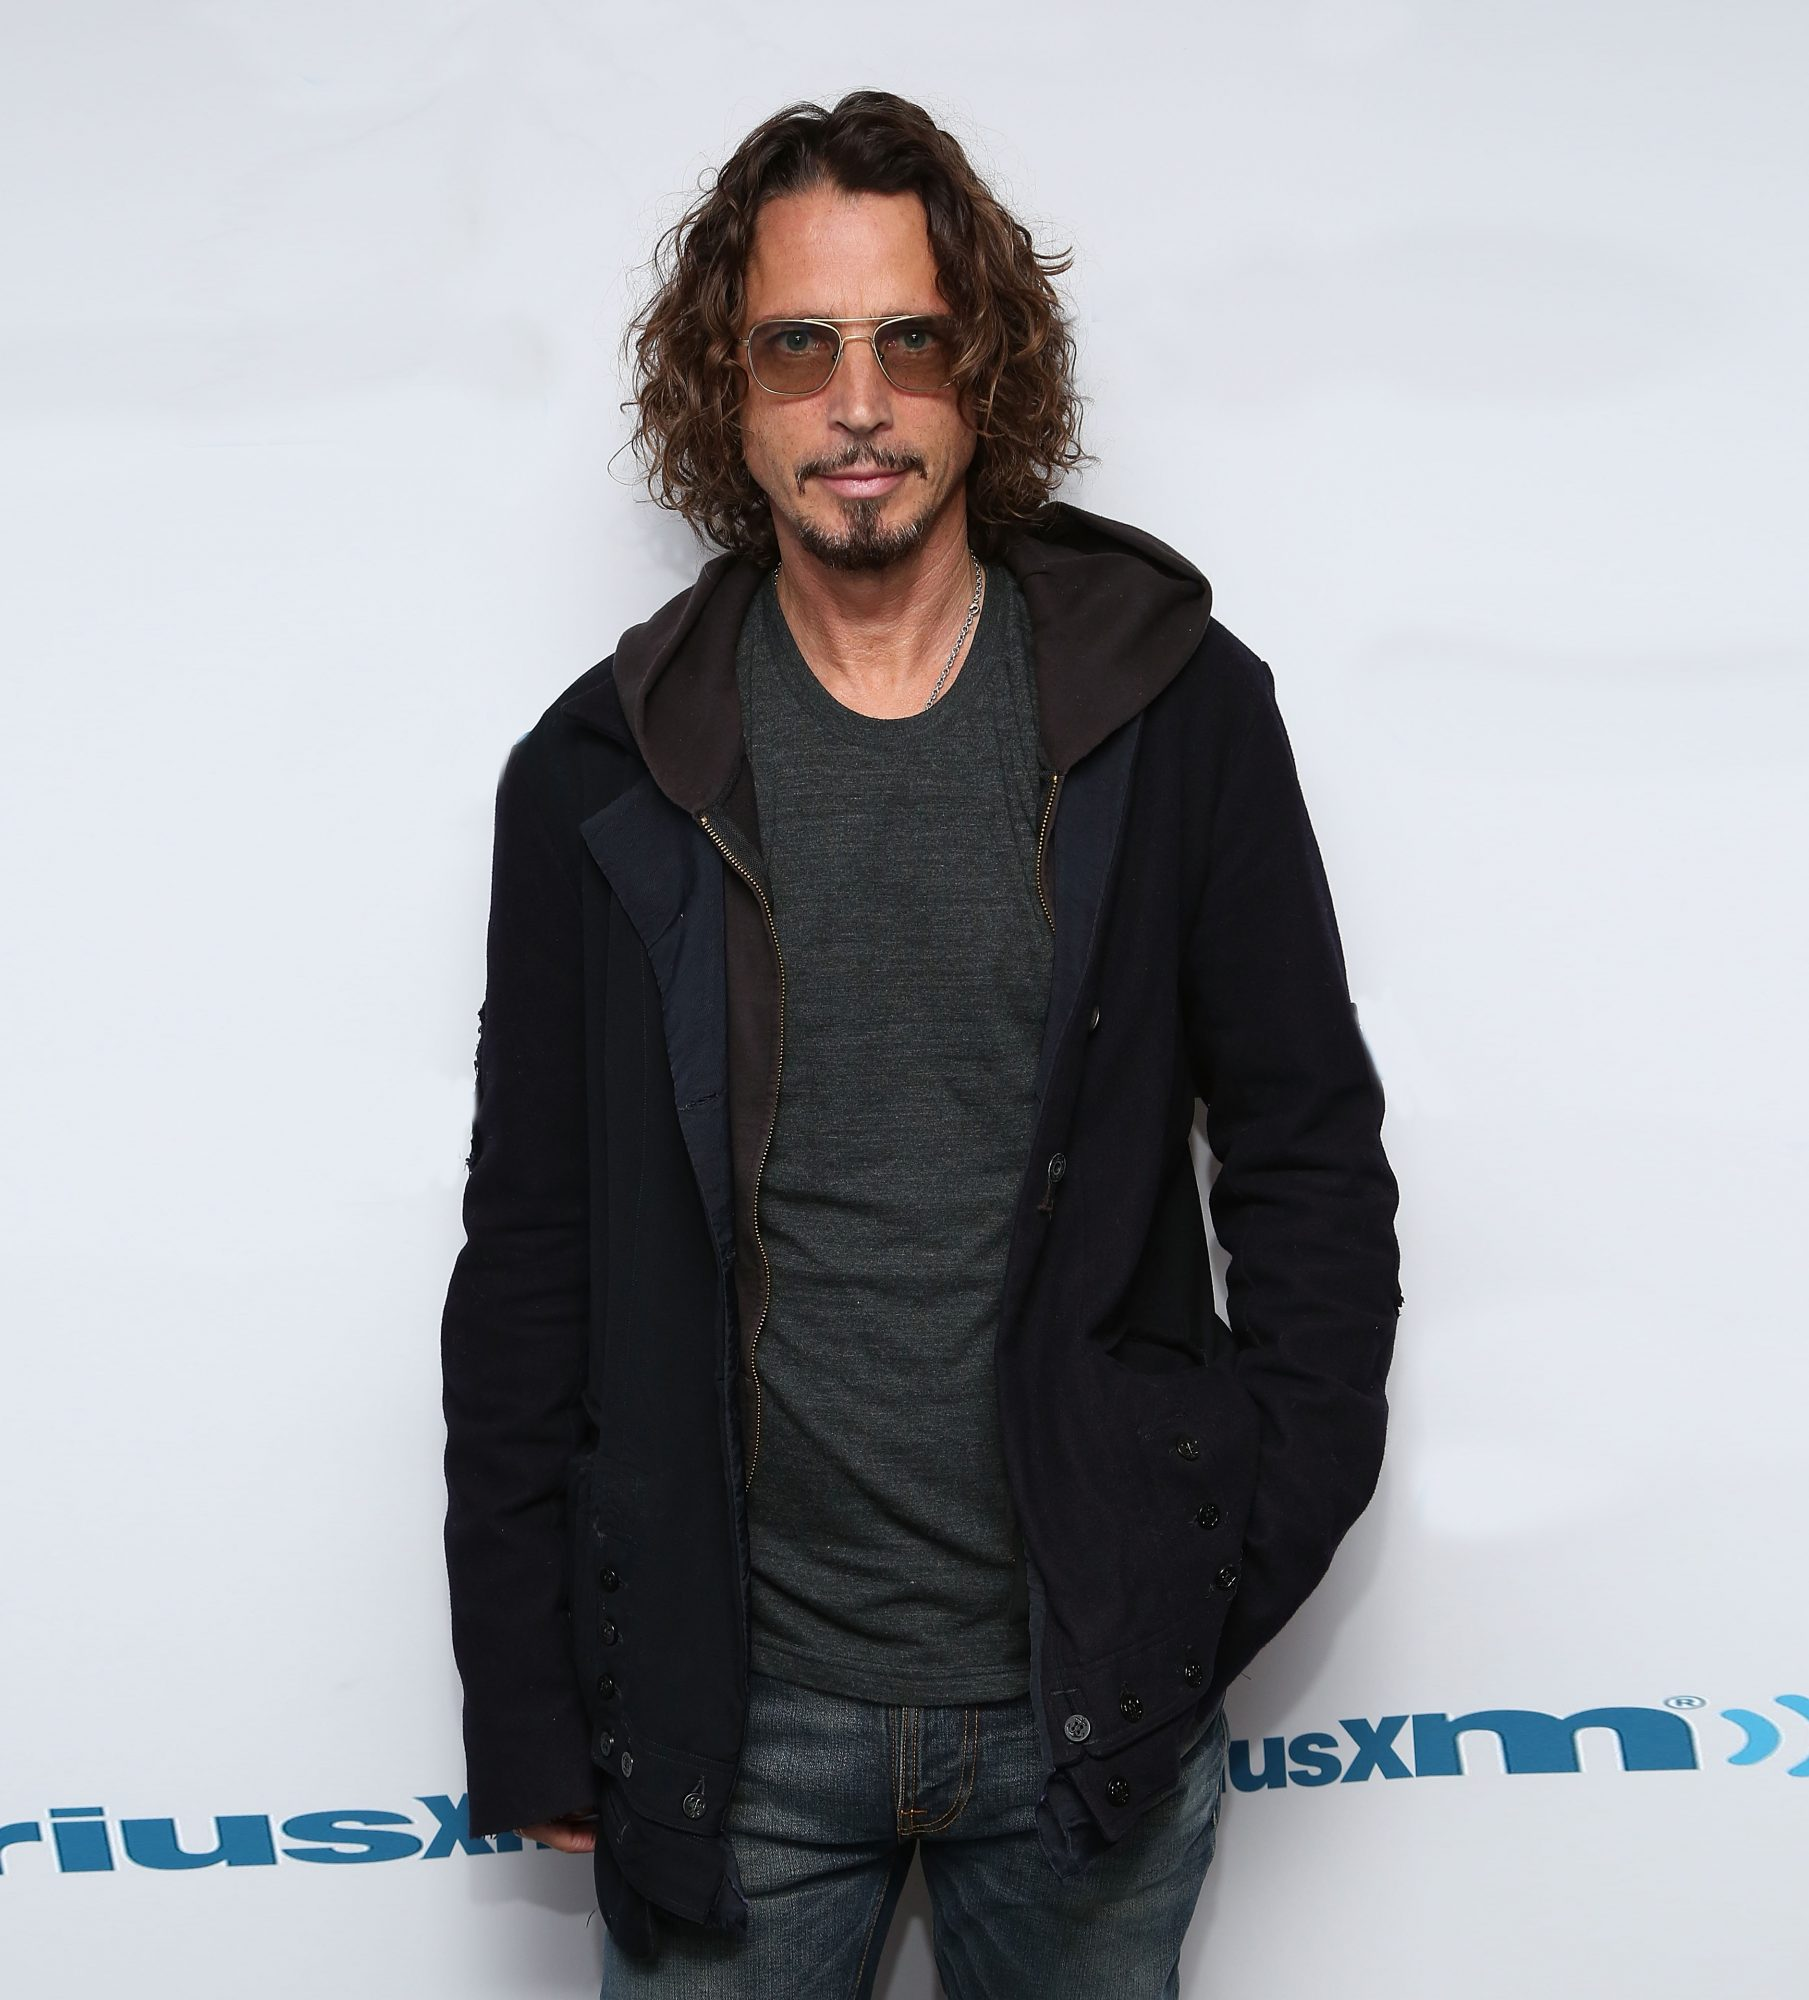 Did the Drugs in Chris Cornell's System Lead to His Suicide? Here's What an Expert Thinks